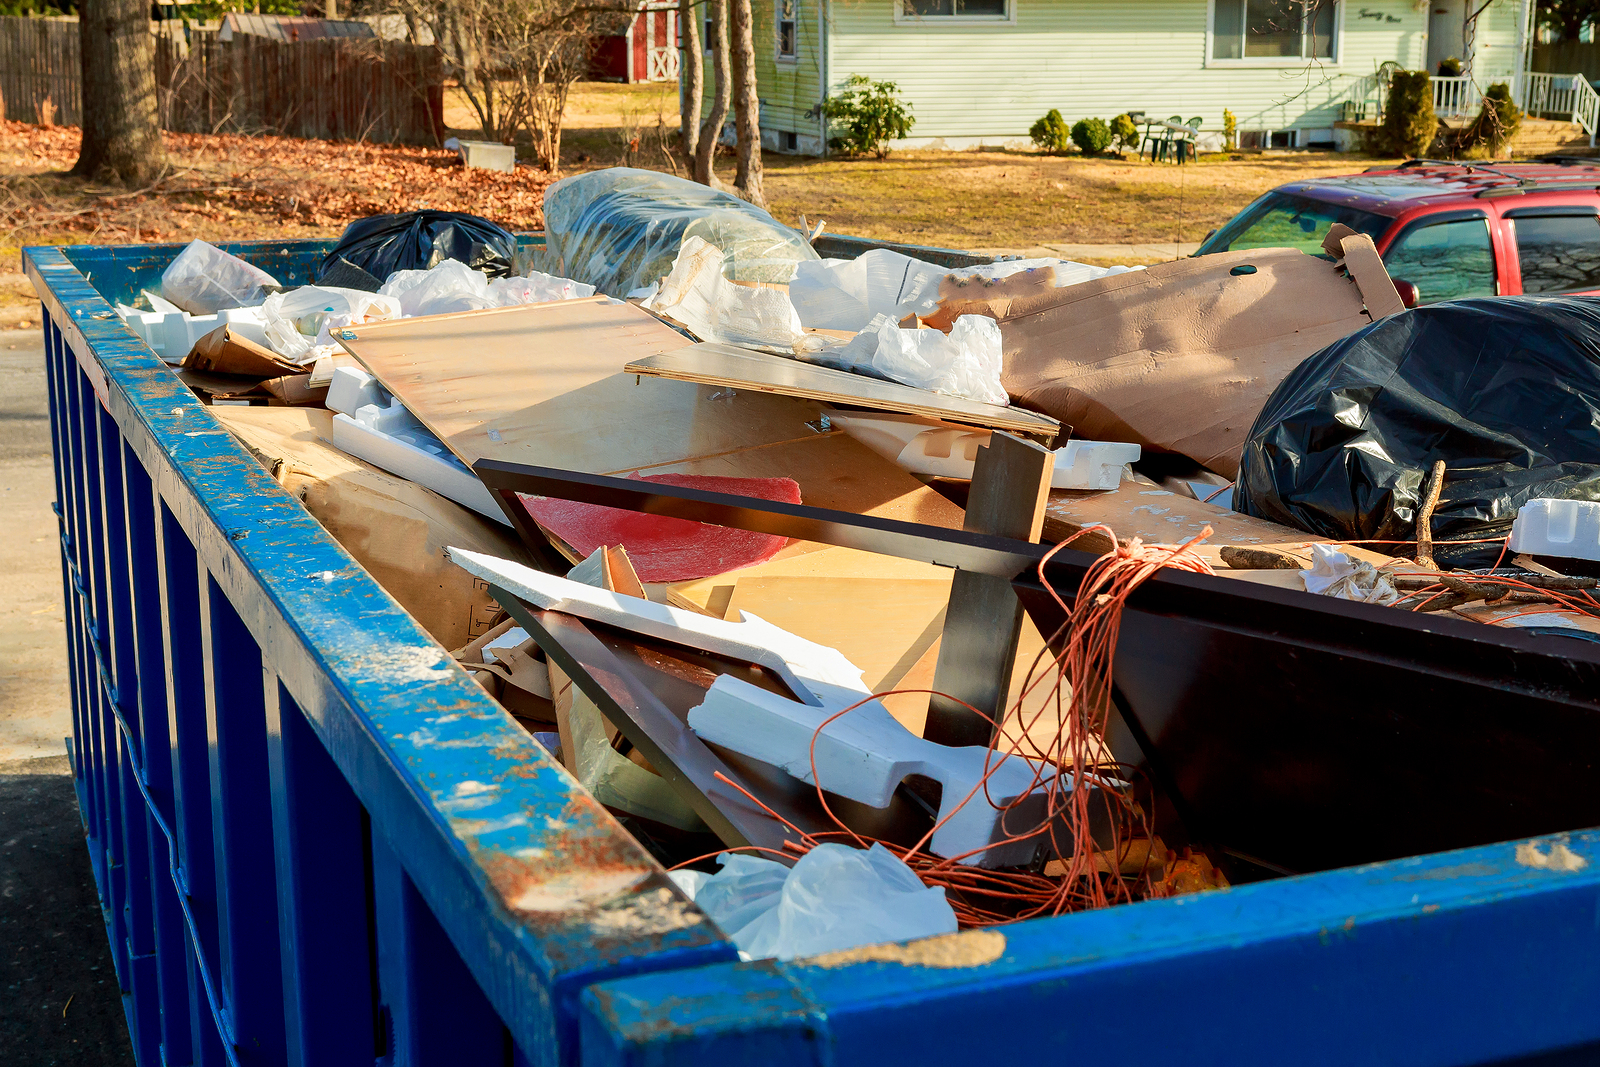 Finding Qualified Junk Removal Services - Frank Loves Junk